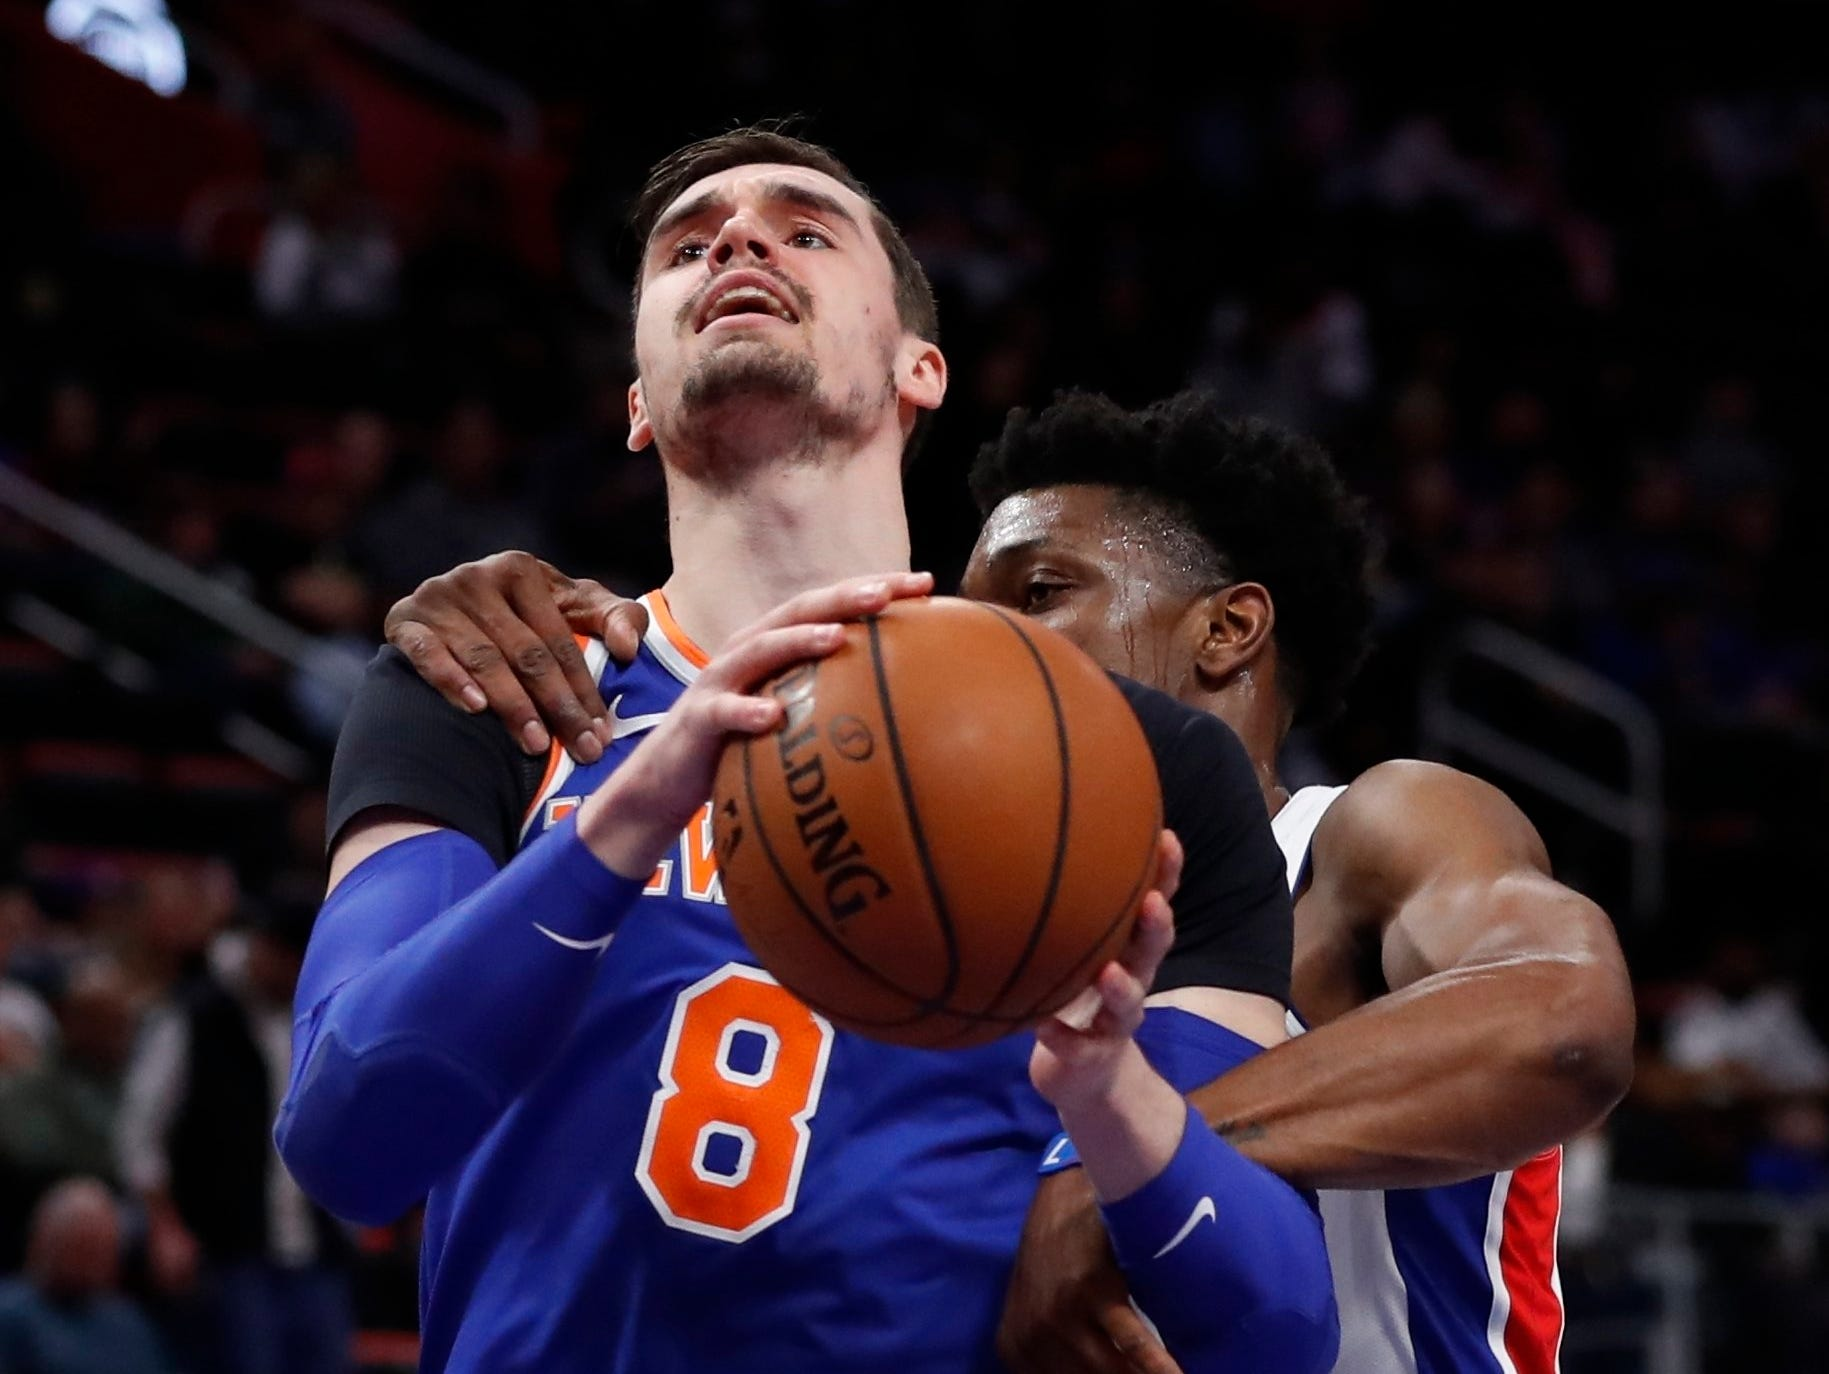 New York Knicks forward Mario Hezonja (8) is fouled by Detroit Pistons forward Stanley Johnson during the first half of an NBA basketball game Tuesday, Nov. 27, 2018, in Detroit.